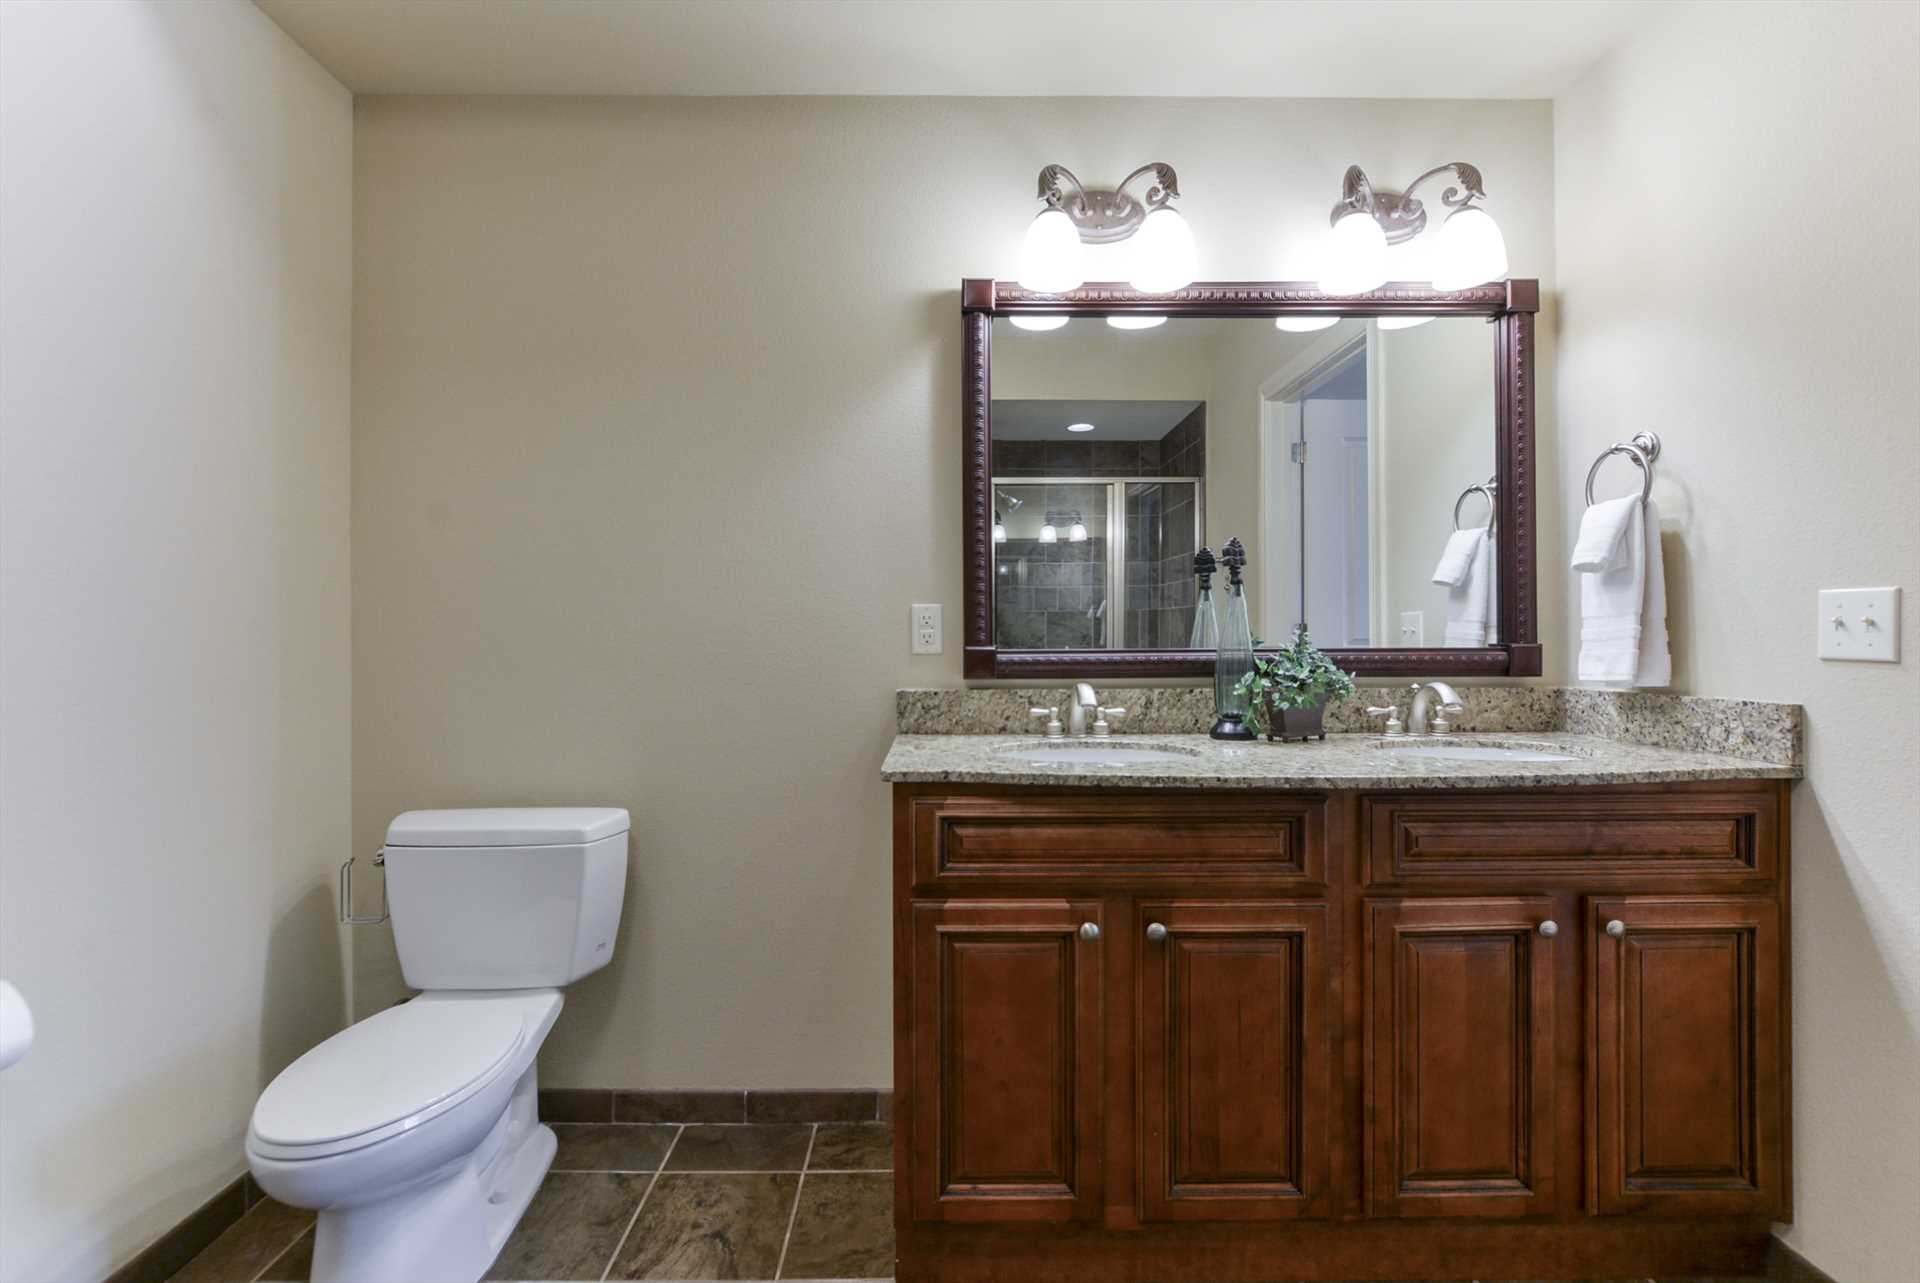 Double sinks helps everyone to get ready for their favorite